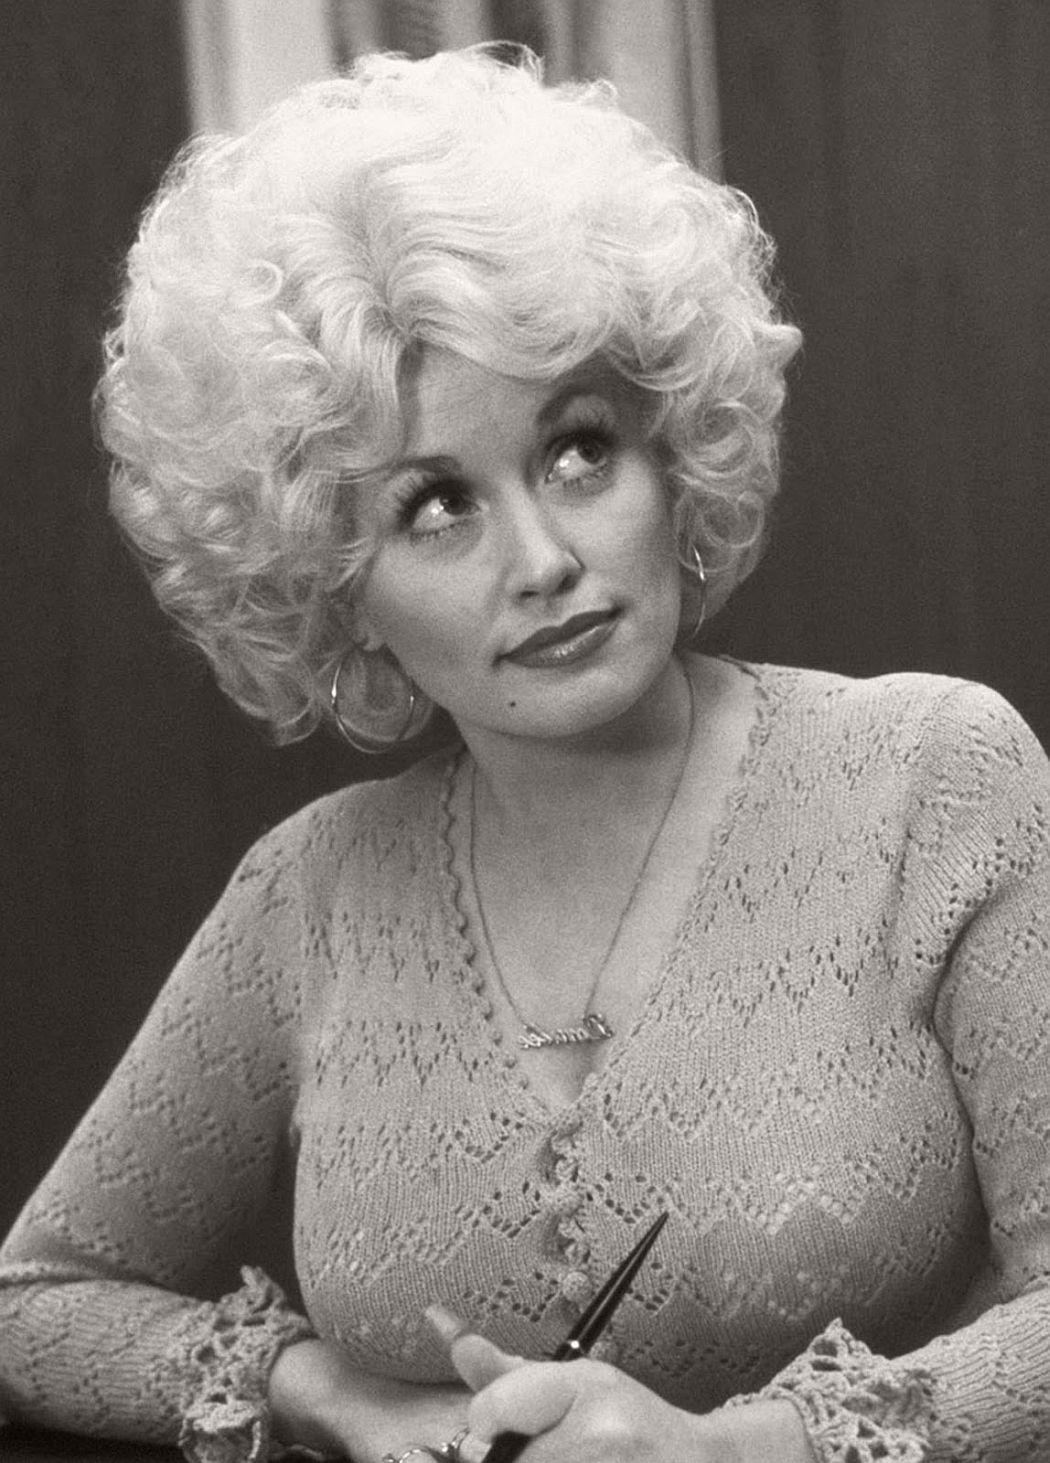 dolly-parton-in-the-1970s-vintage-portraits-02